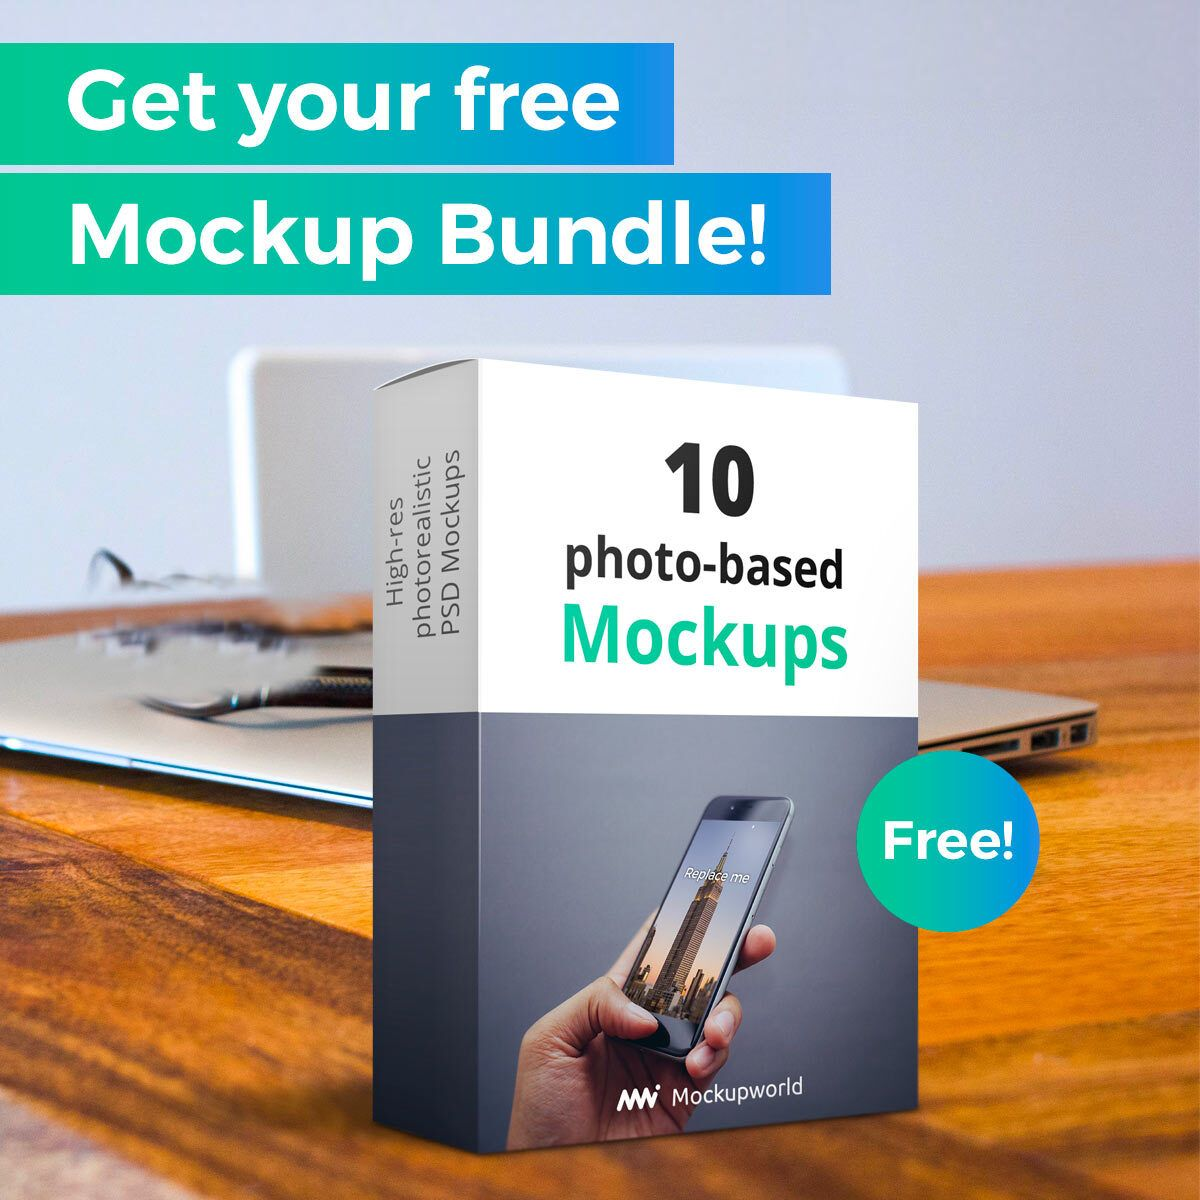 Mockup World The Best Free Mockups From The Web Free Mockup Mockup Photorealistic Mockups